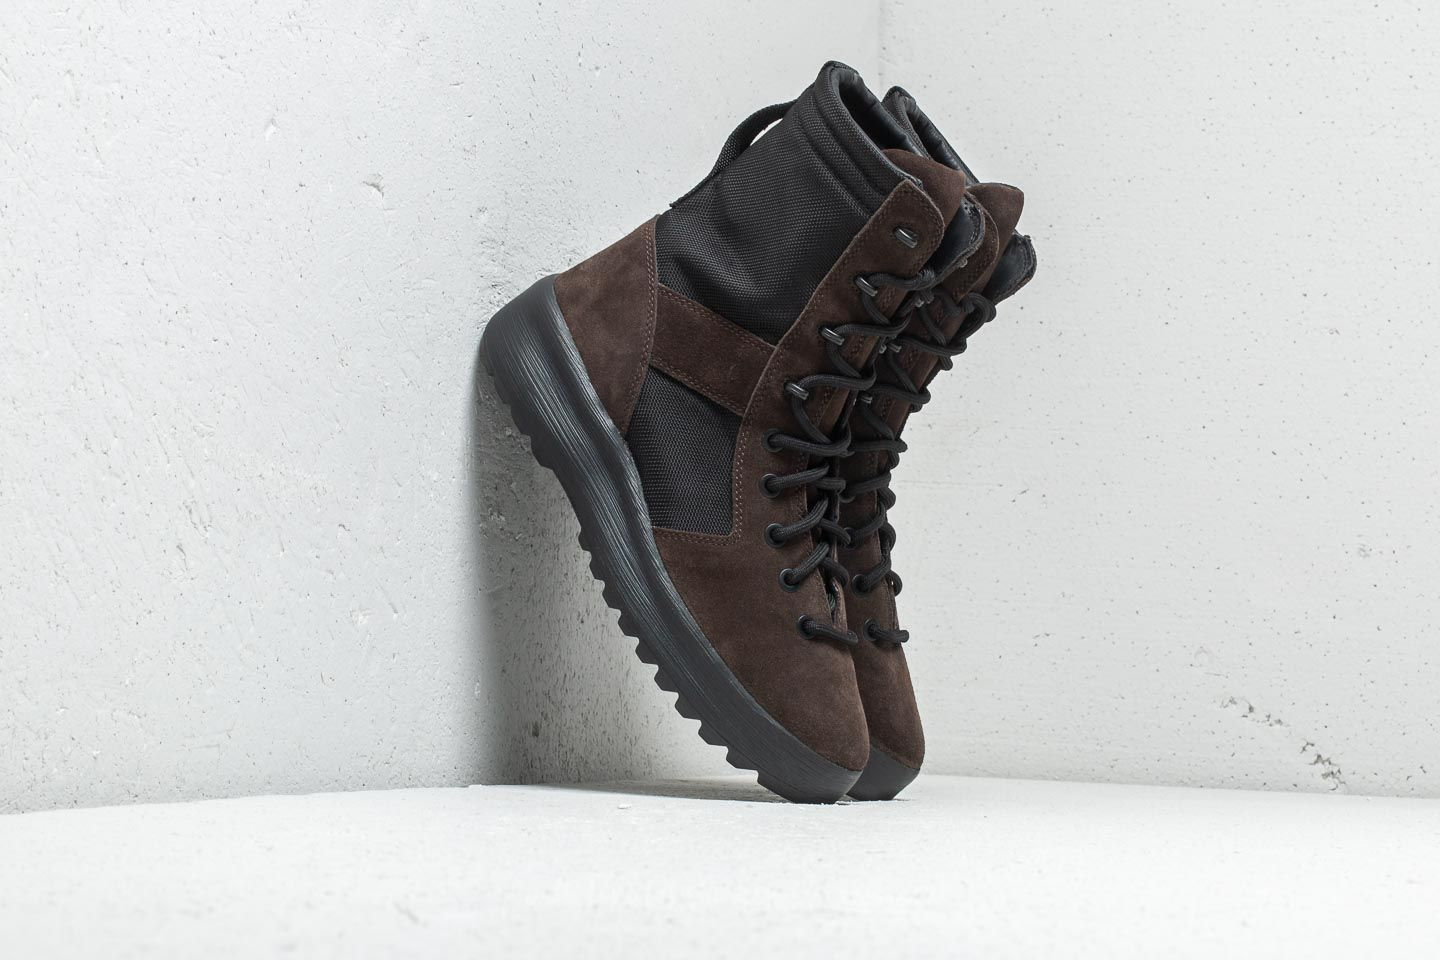 b875f8a57 Yeezy Season 7 Military Boot Oil